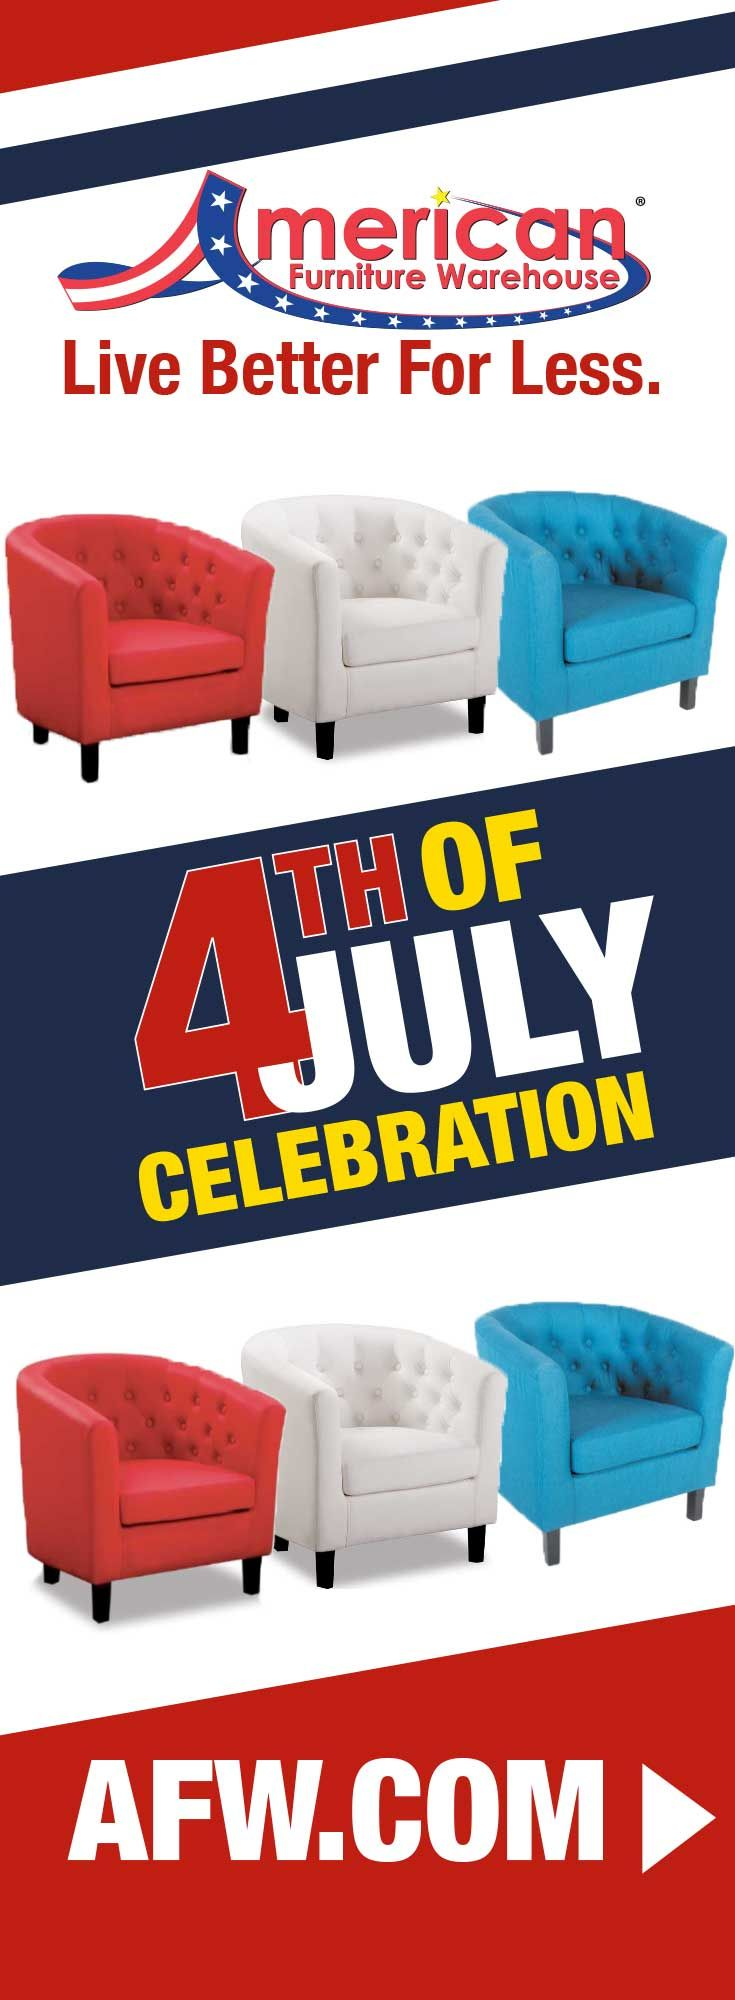 Bring patriotic flair to your home this 4th of July with a red, blue or white Mallory Tub Chair from American Furniture Warehouse. Shop now at AFW.com.